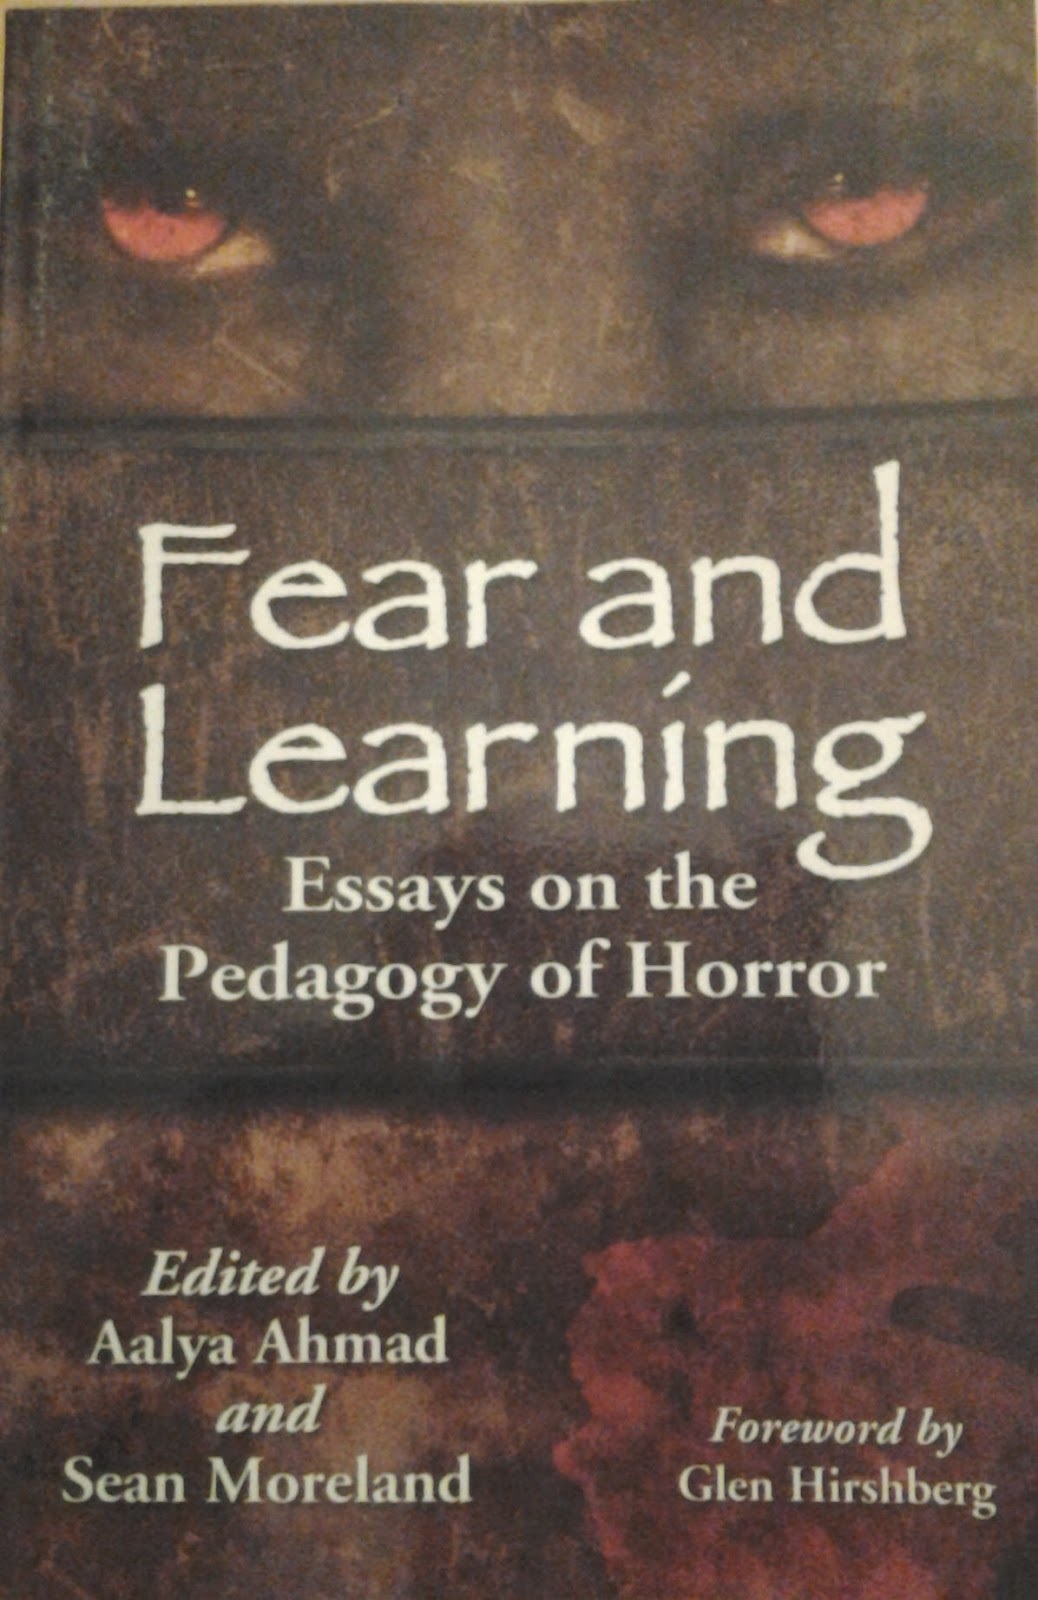 Fear and Learning: Essays on the Pedagogy of Horror edited by Aalya Ahmad and Sean Moreland, McFarland Books